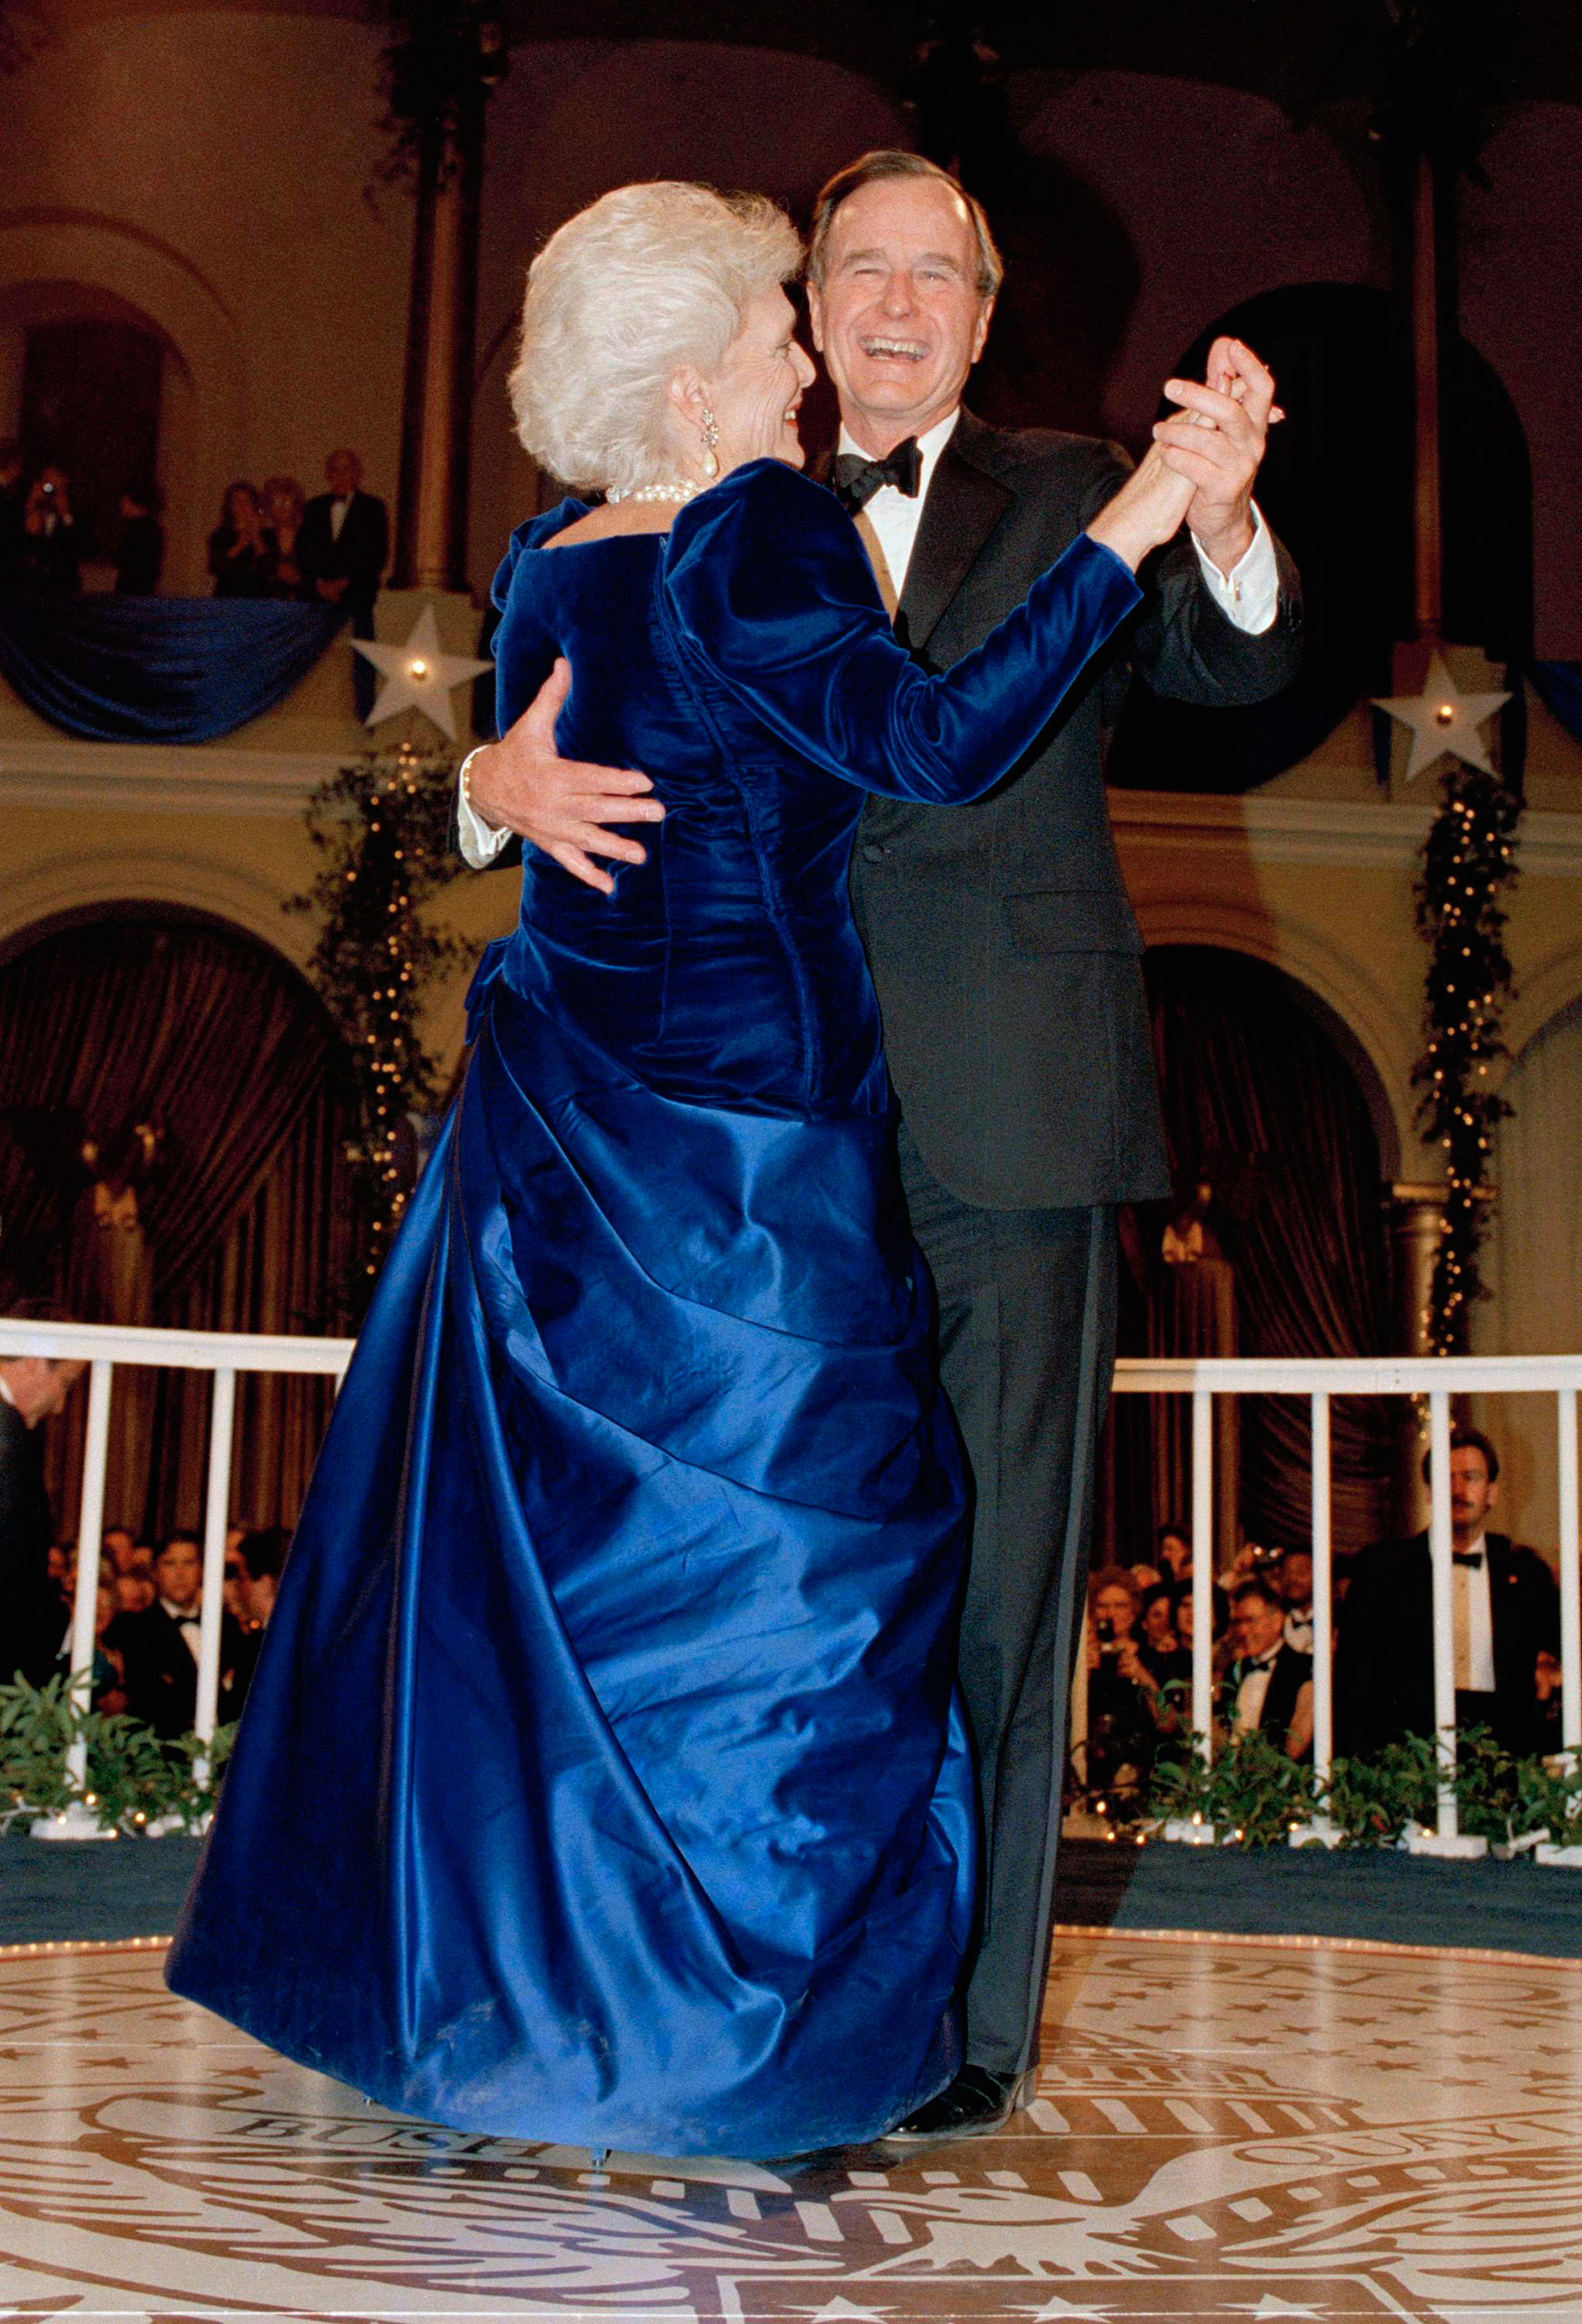 President George H.W. Bush and wife, Barbara dance at the inaugural ball at the Pension Building in Washington, D.C., on Jan. 20, 1989.